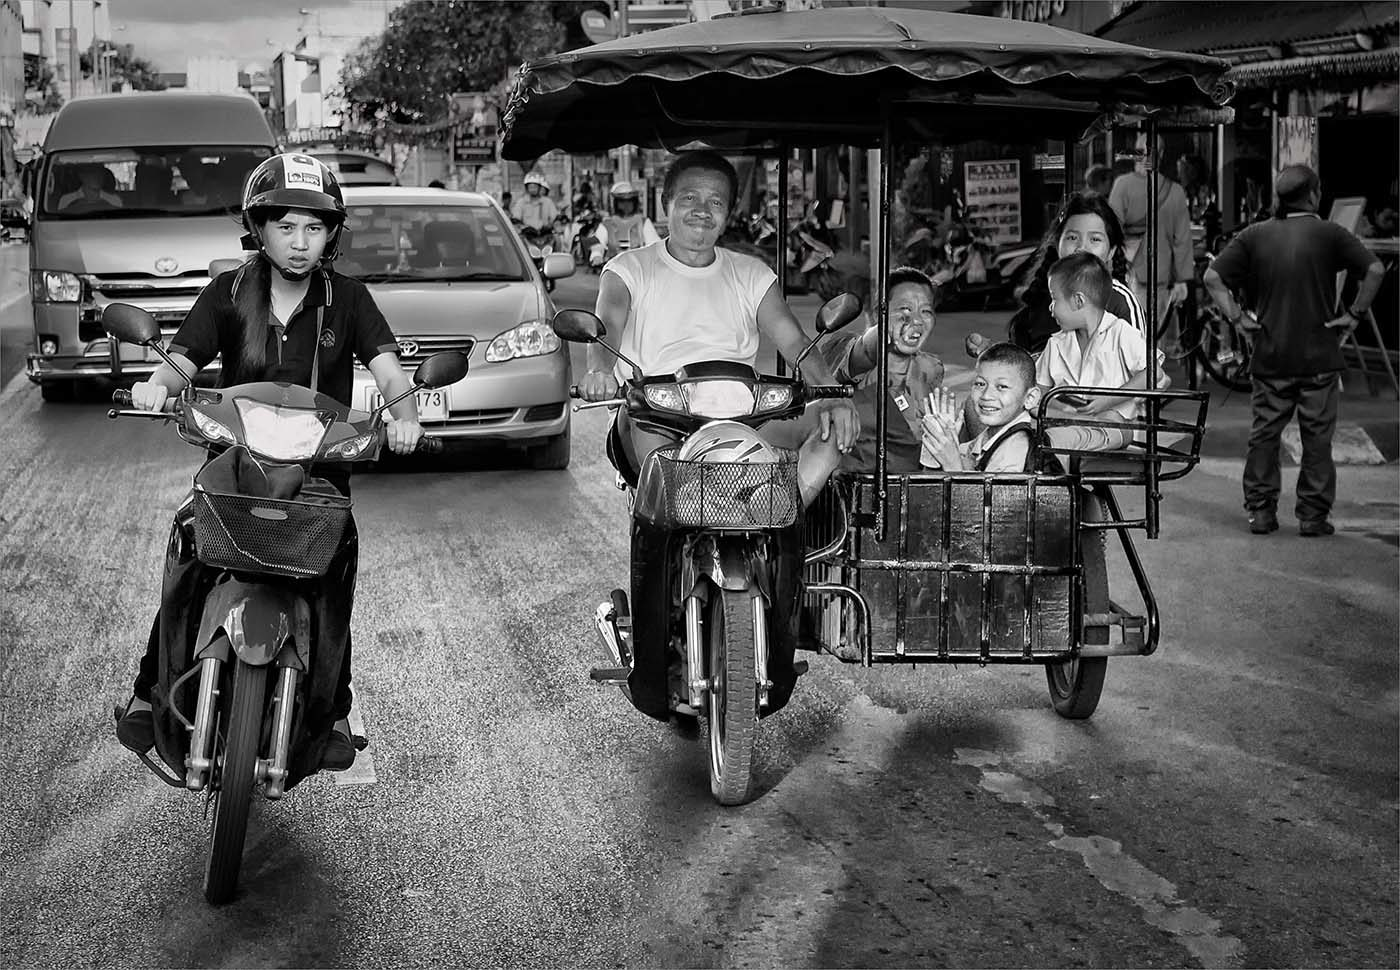 The streets of Chang Mai </br>by Carol Robinson </br>(A Grade) – HONOUR